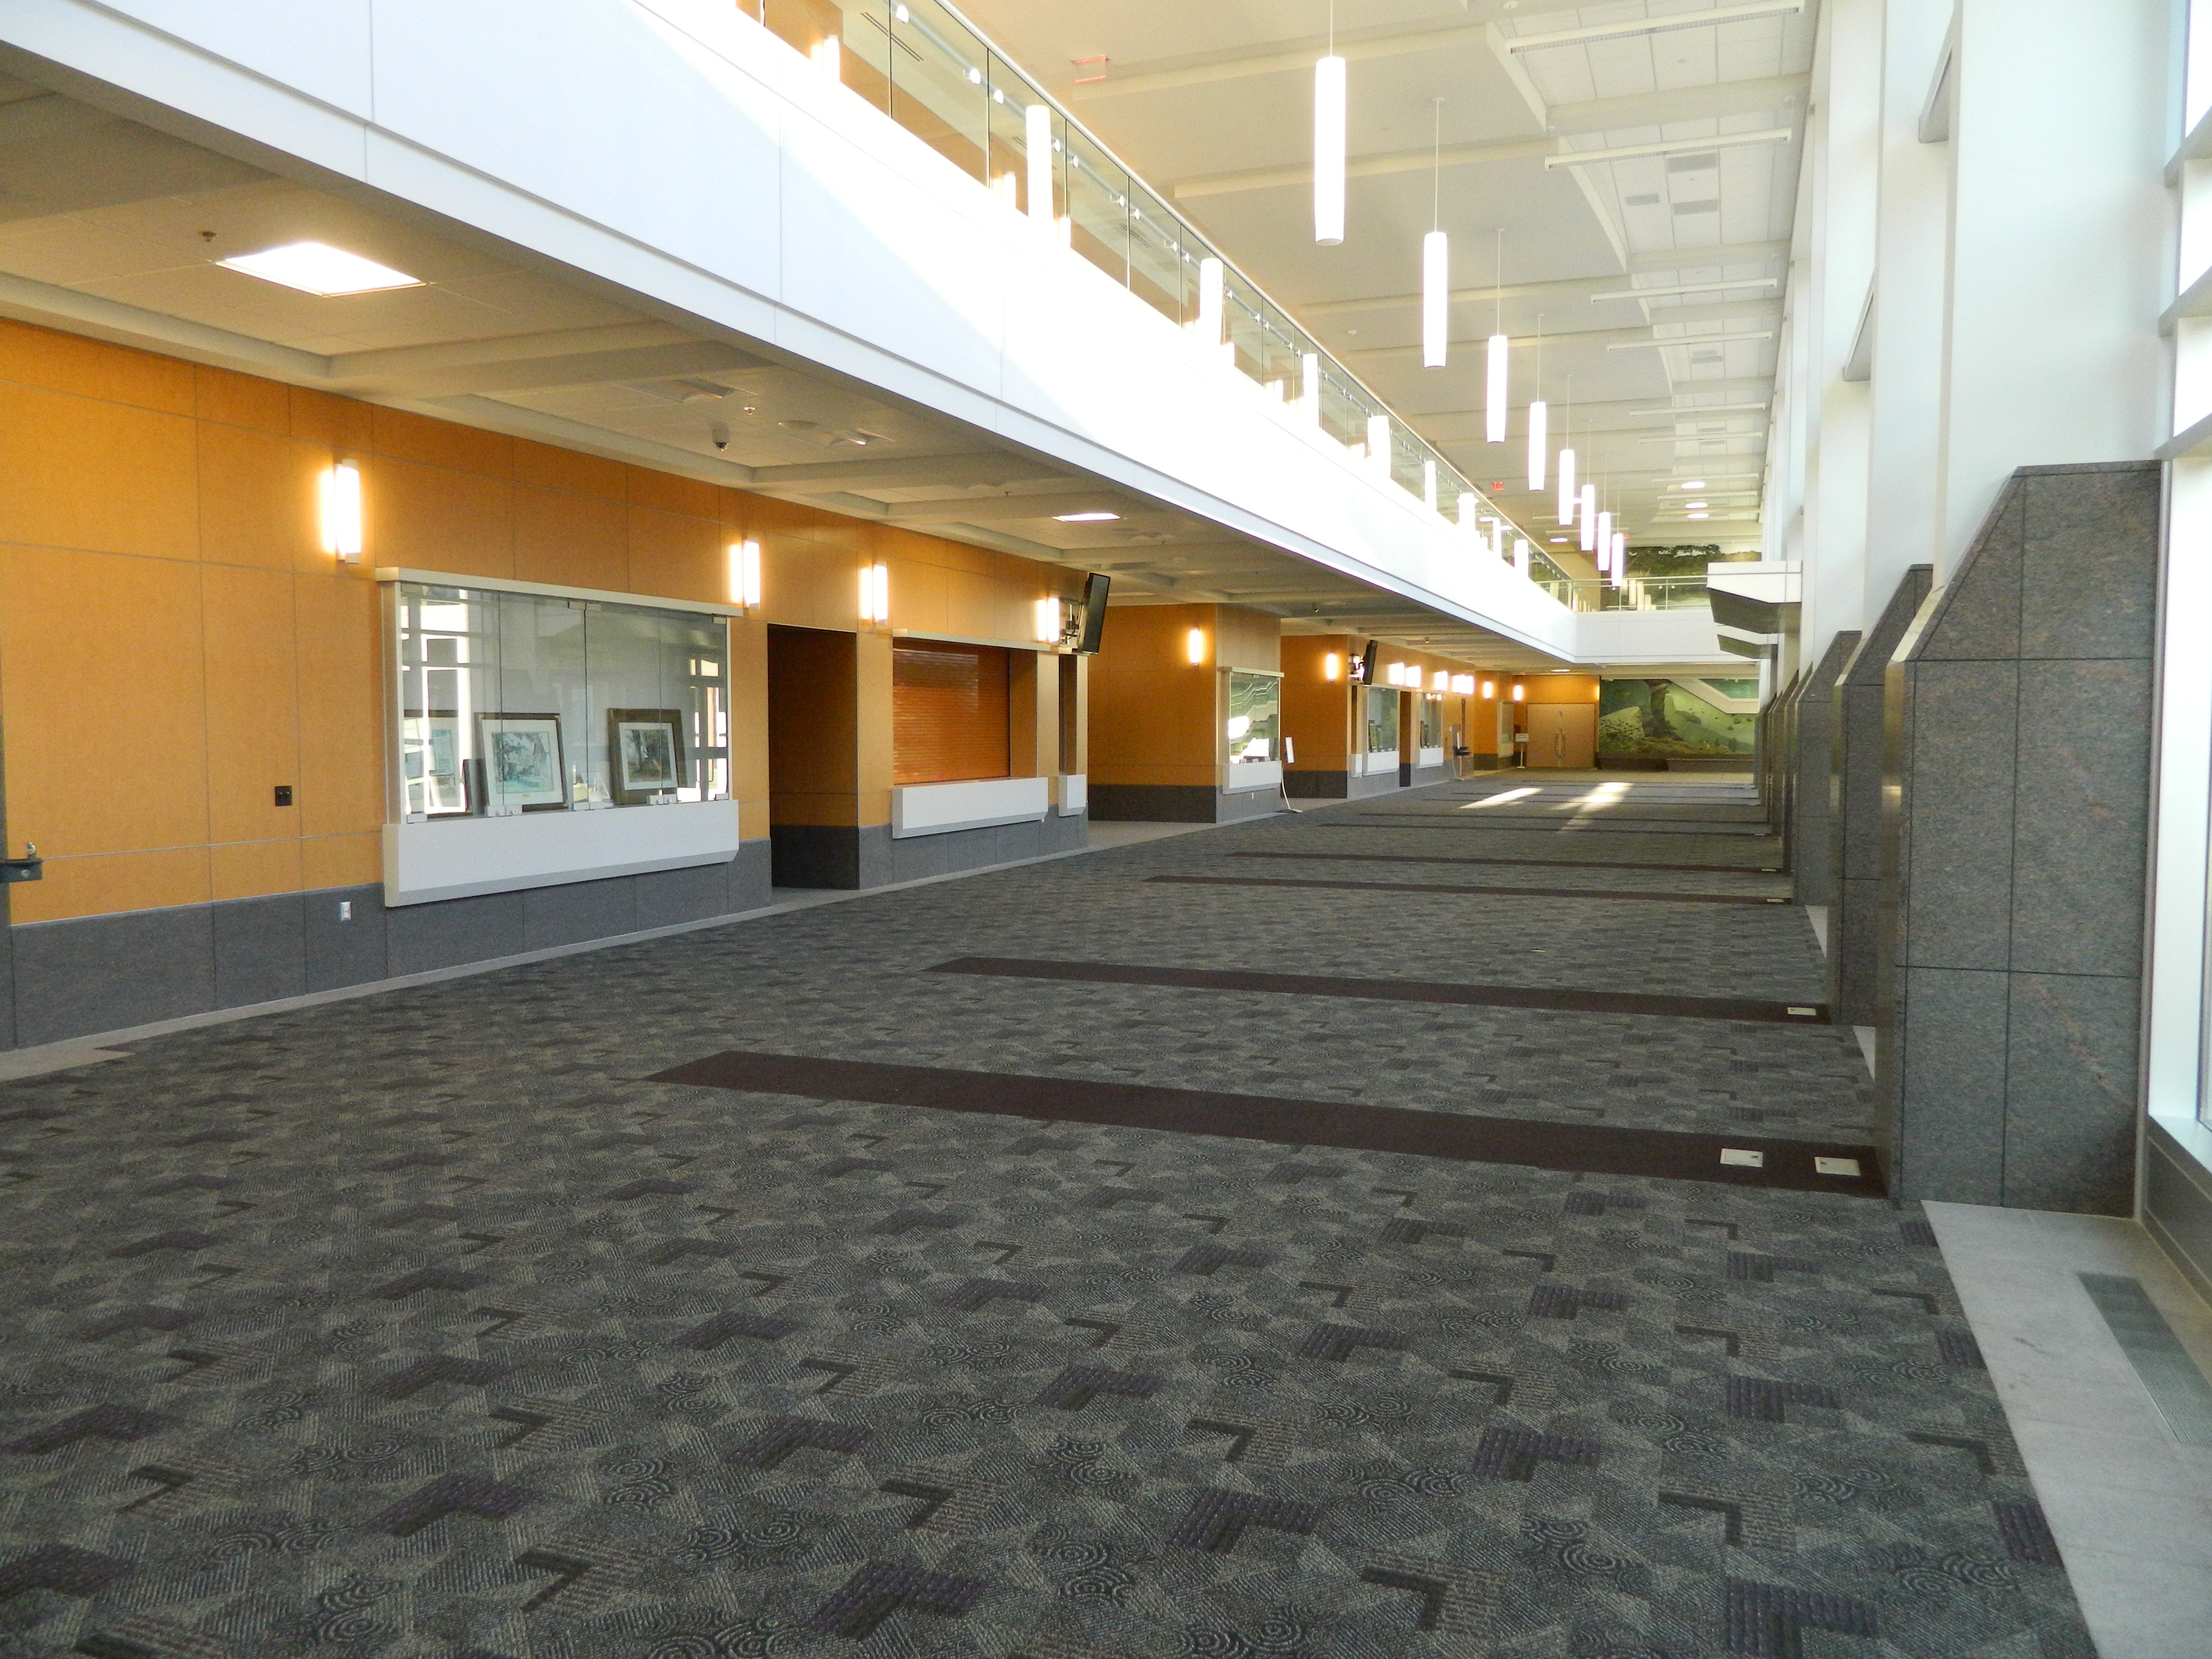 Main hall of Convention Center with wall displays, carpeted floor, and high ceilings